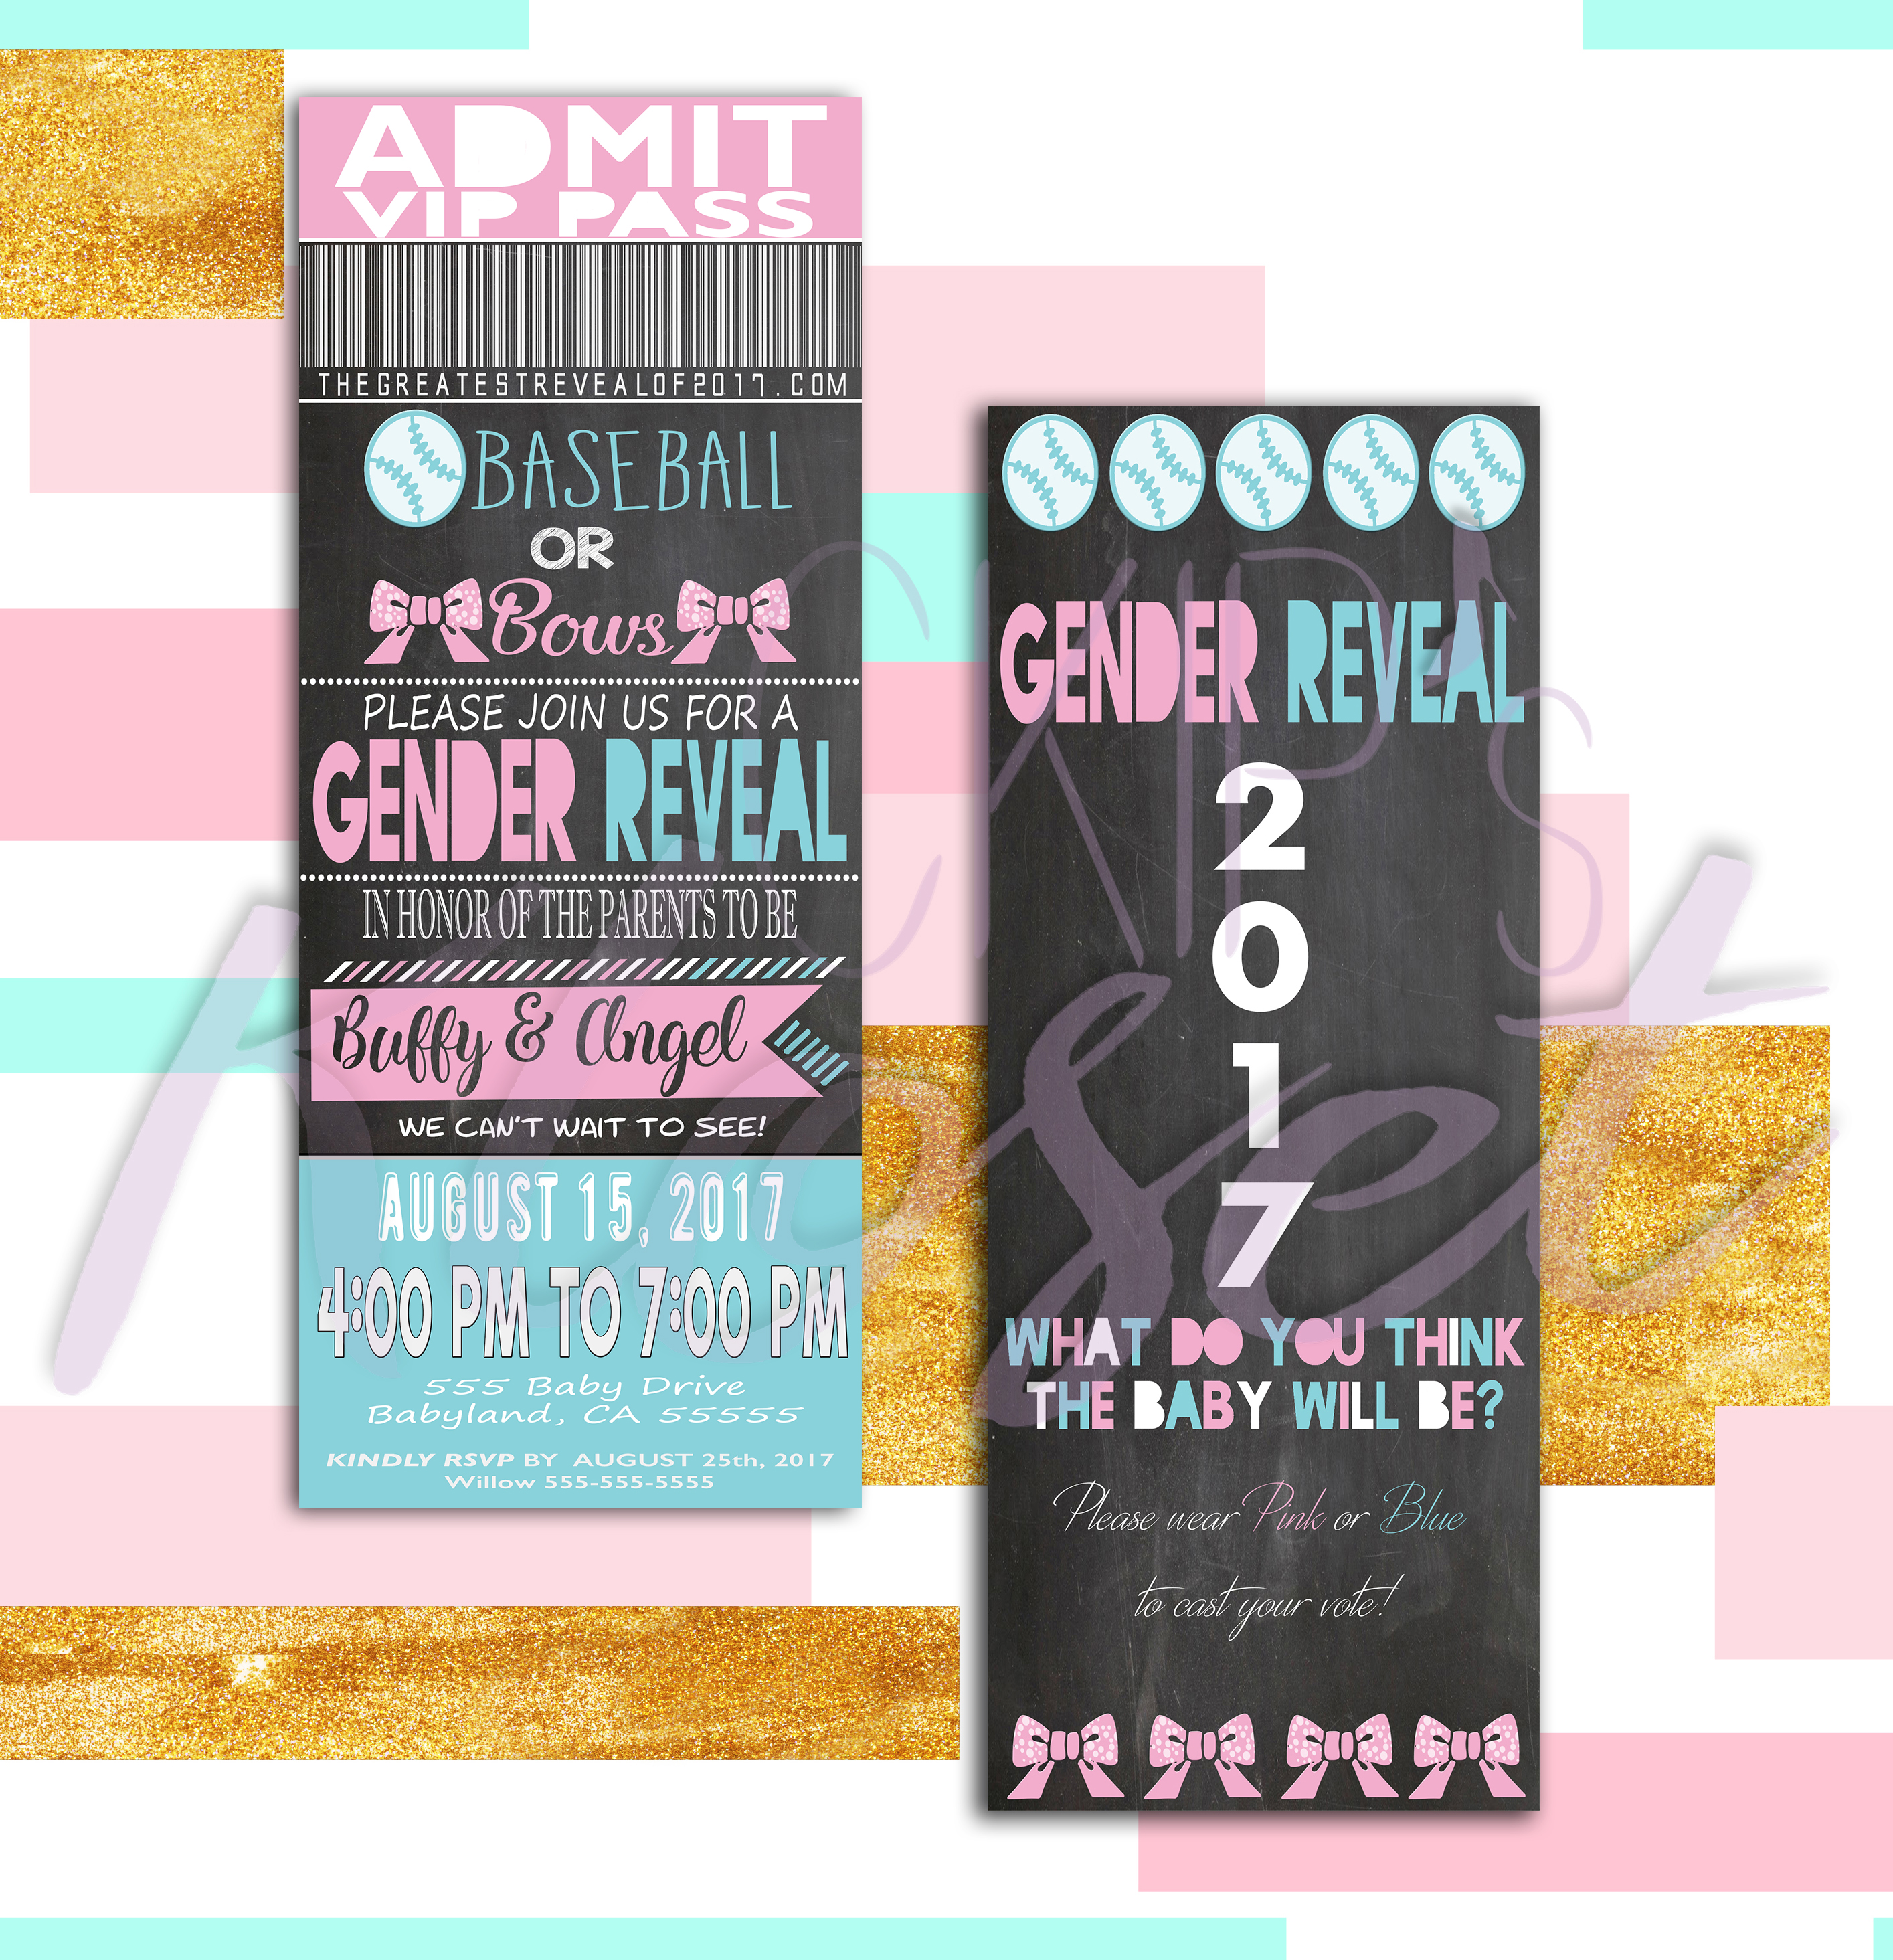 VIP Pink and Blue Gender Reveal Invitation Baseball Or Bows